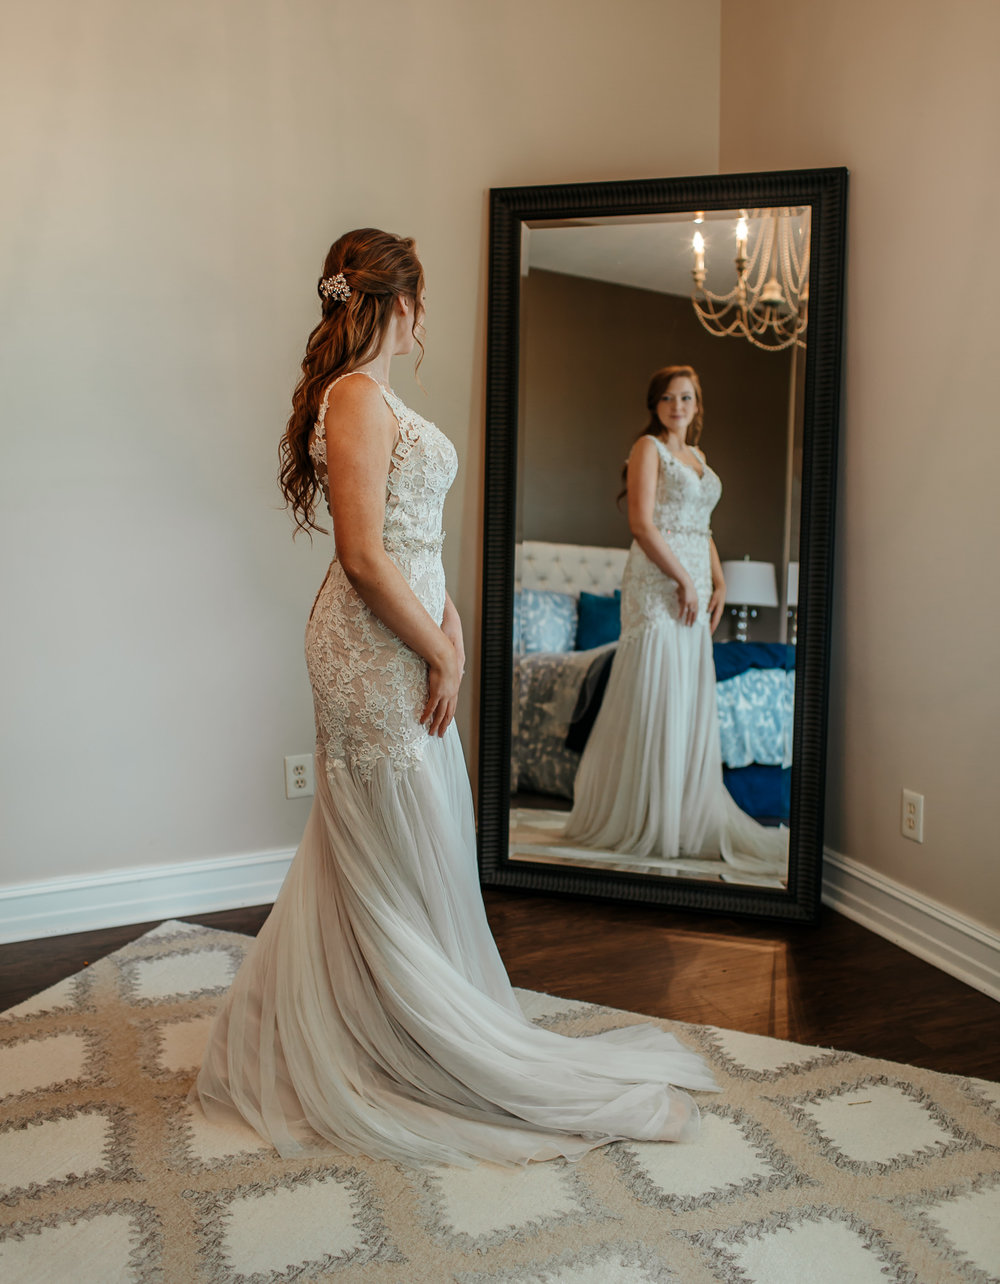 Kentucky bride sees herself for first time in dress